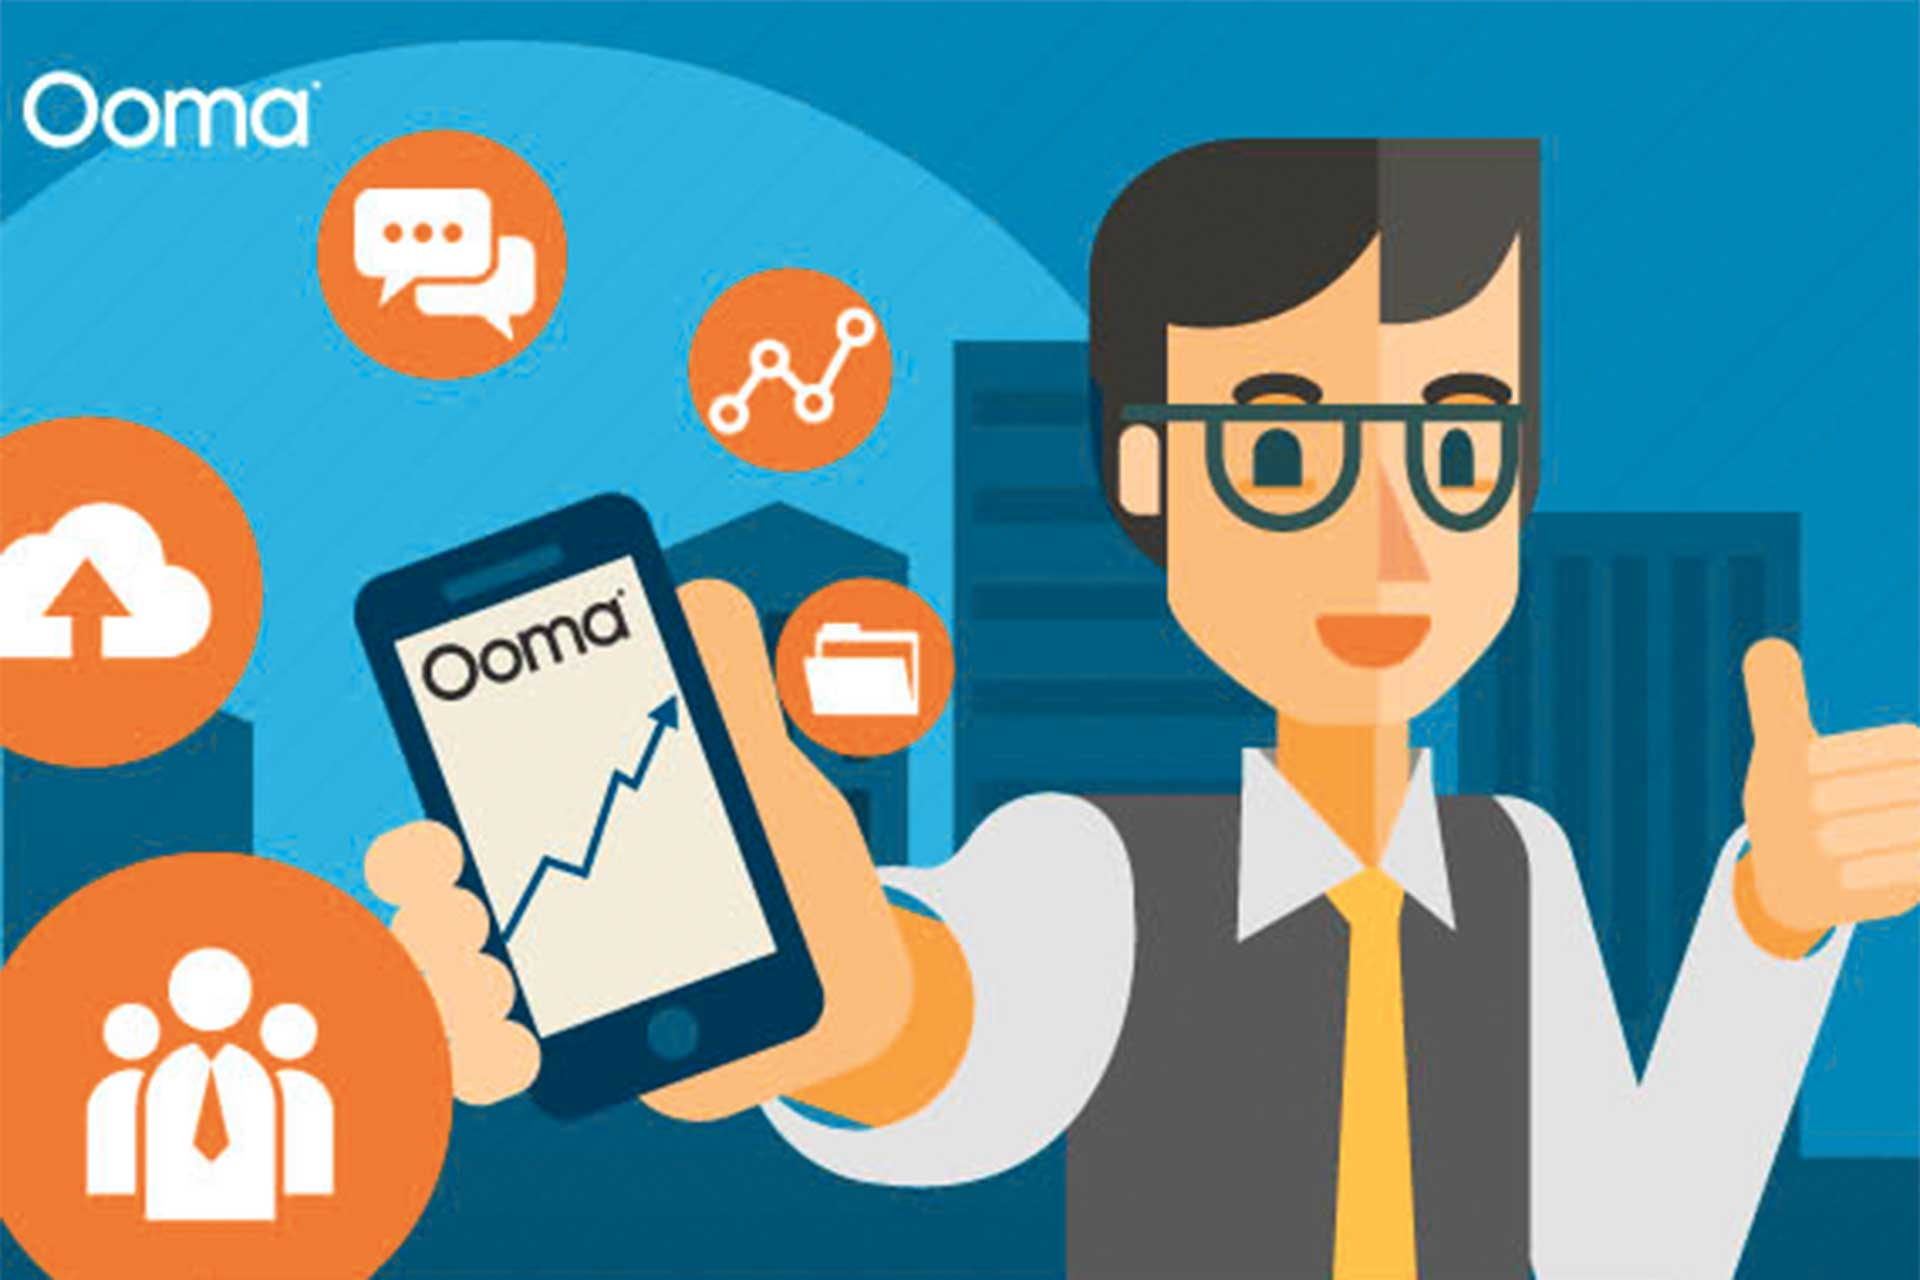 Ooma's Guide to Running Your Business From Your Mobile Device - blog post image